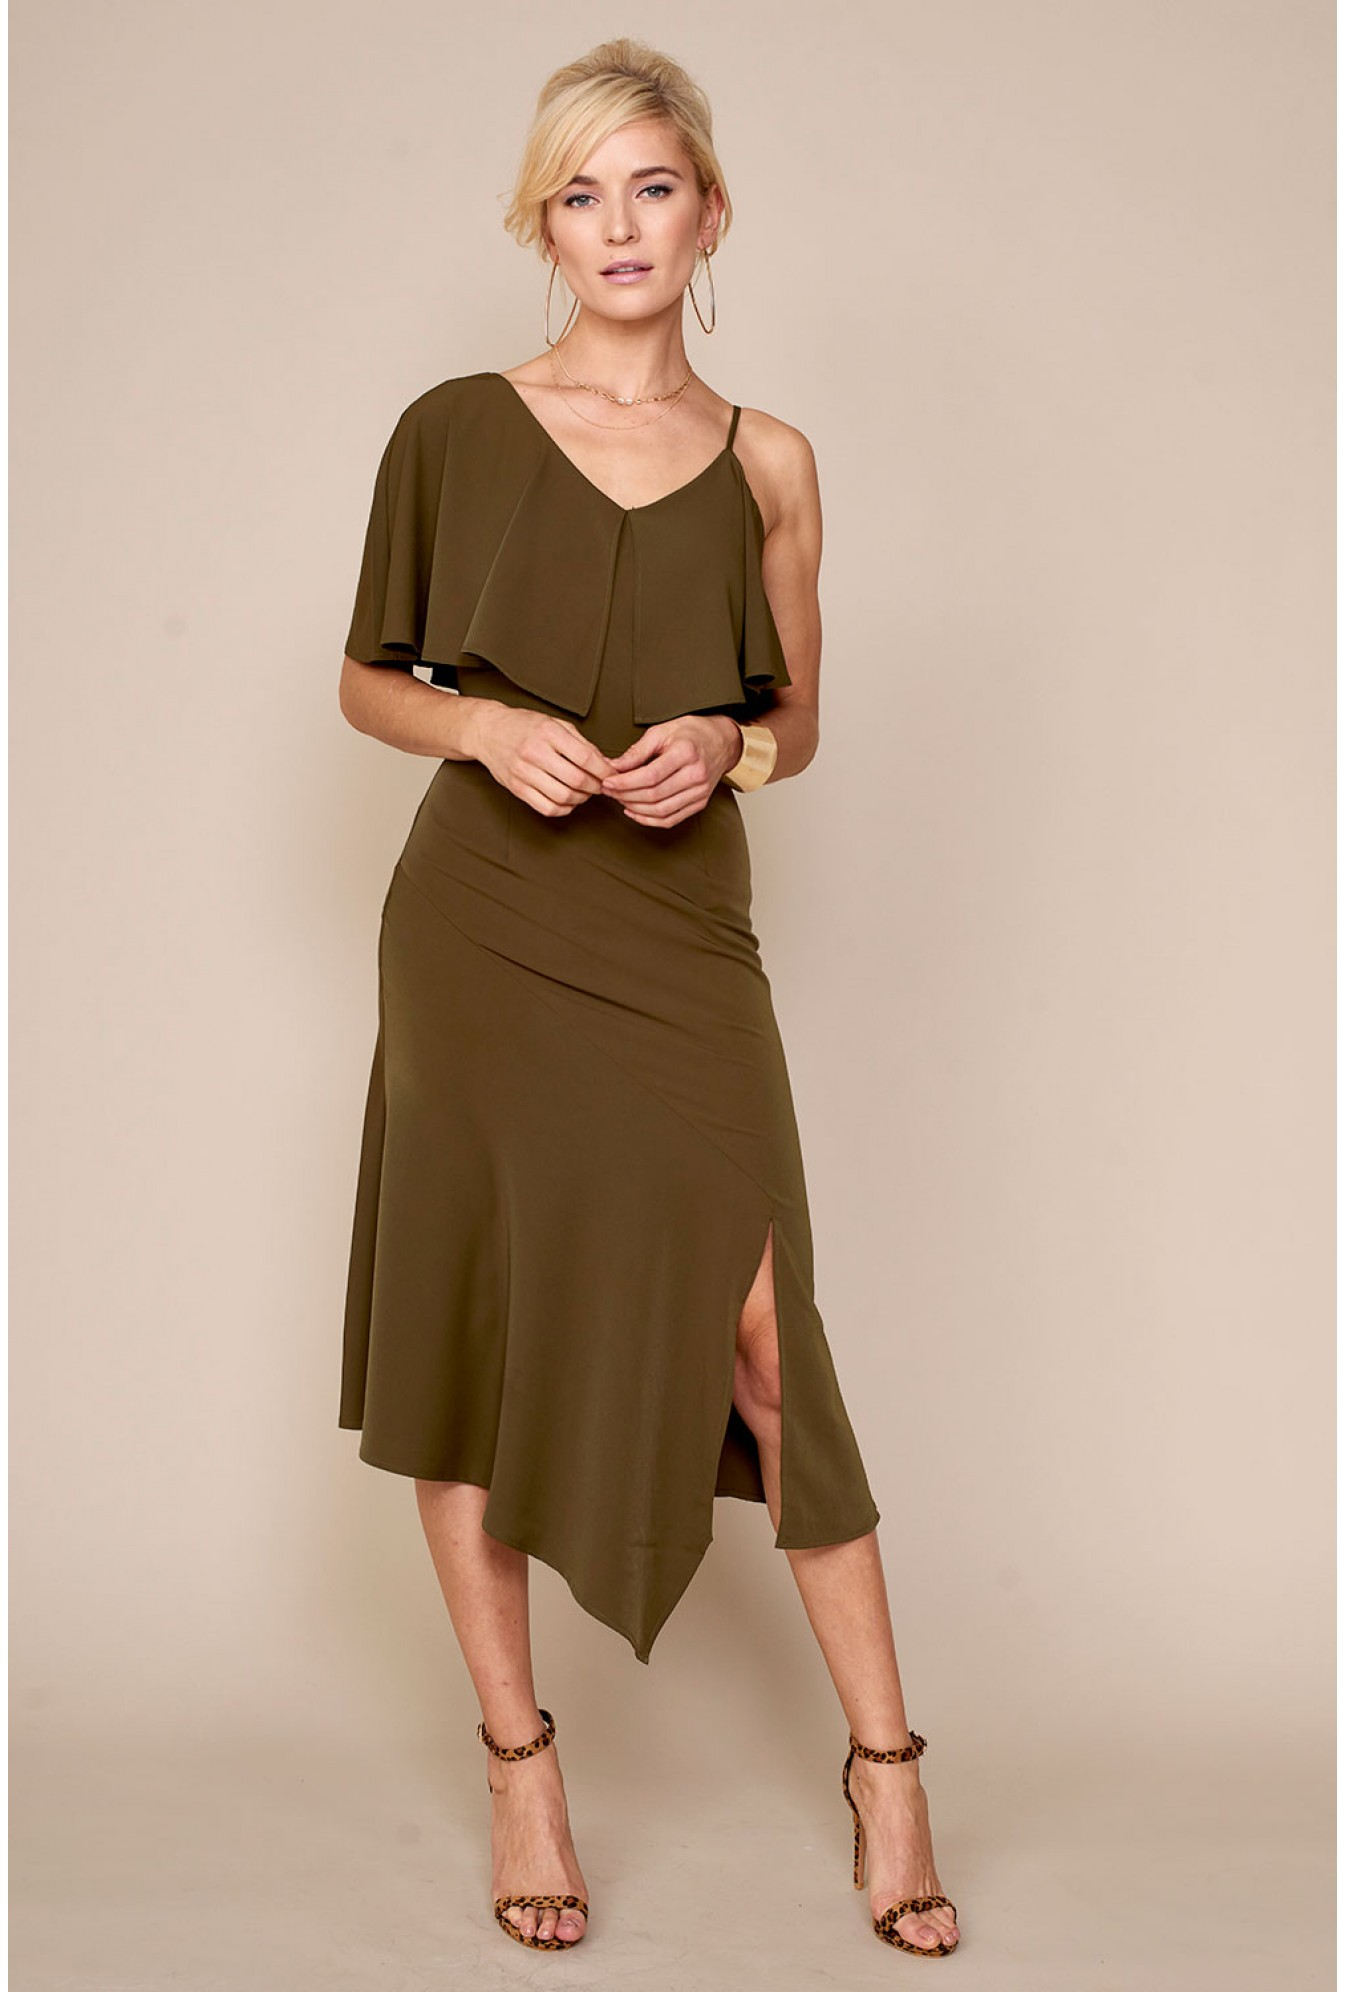 0b9a75d0f2b2 Lavish Alice Lavish Alice Off Shoulder Dress in Khaki